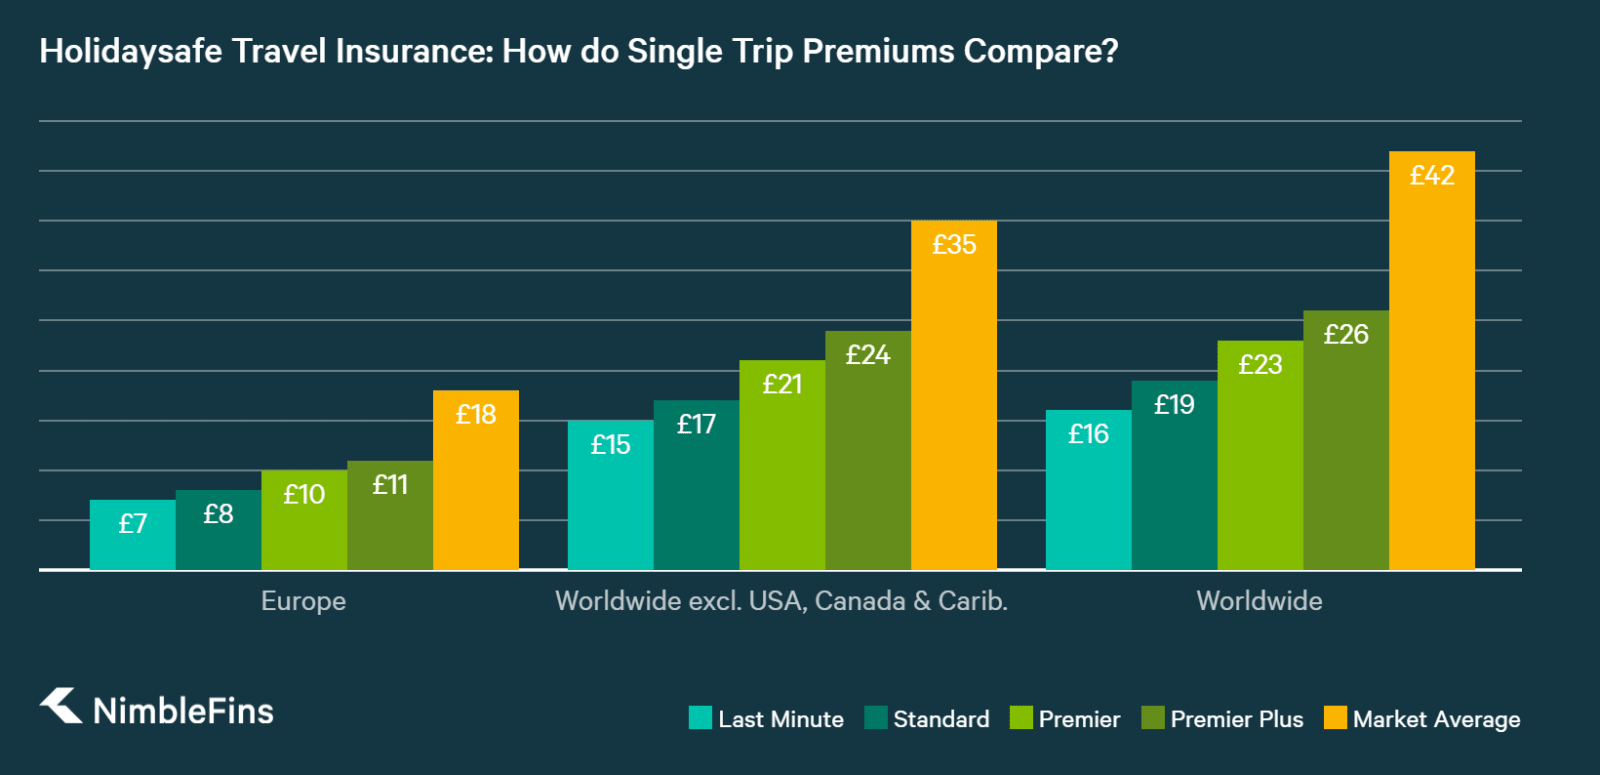 chart showing Holidaysafe single-trip travel insurance prices compared to market averages